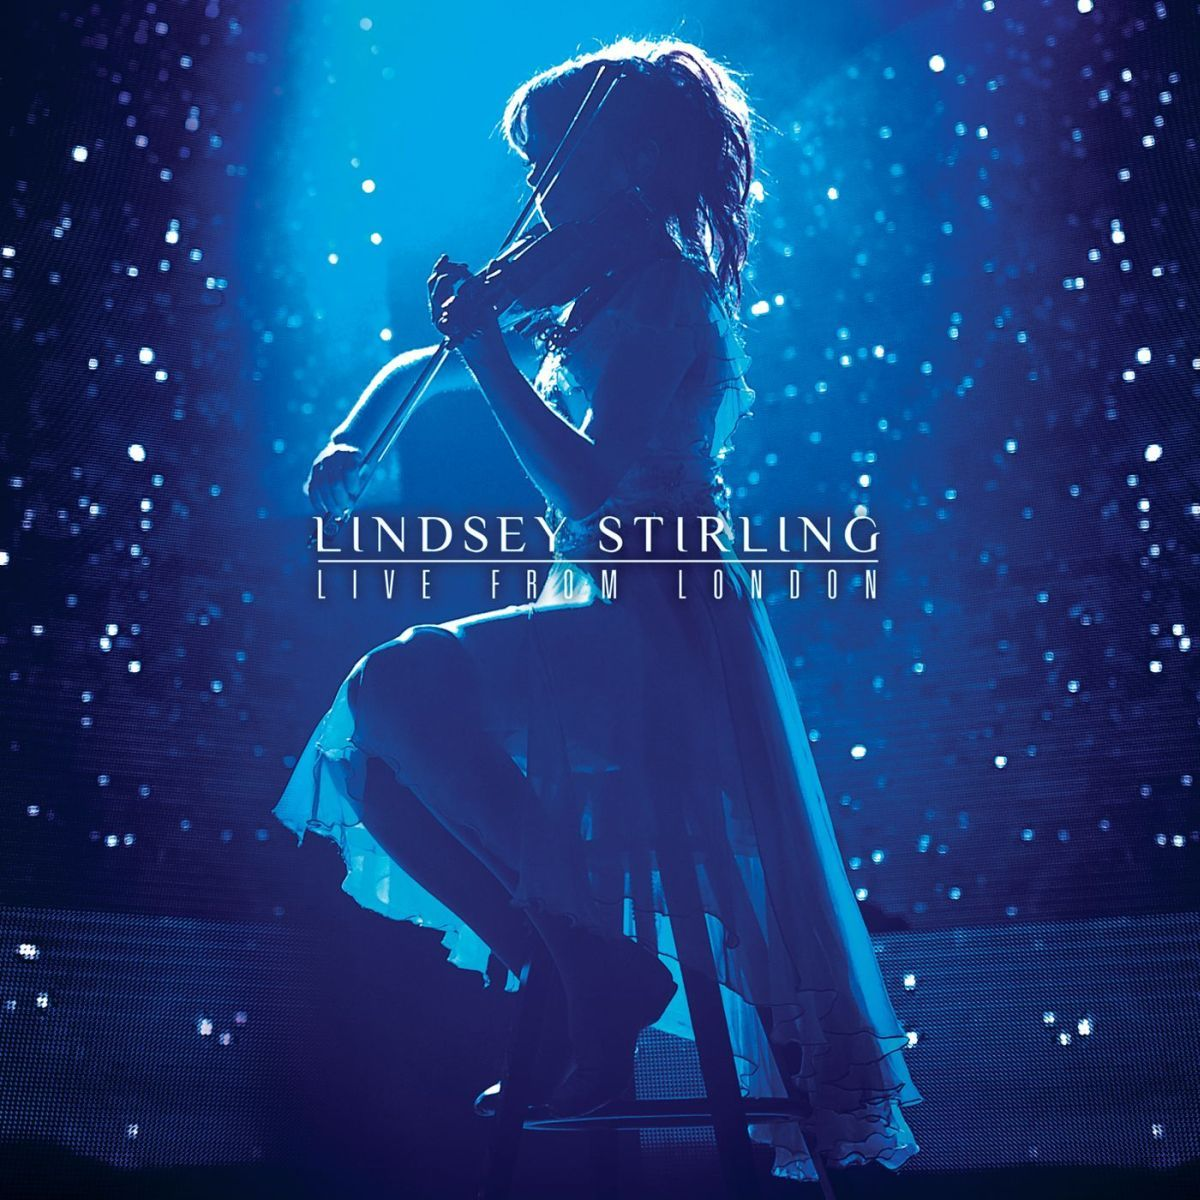 lindsey-stirling-live-from-london-cover.jpg (1200×1200)